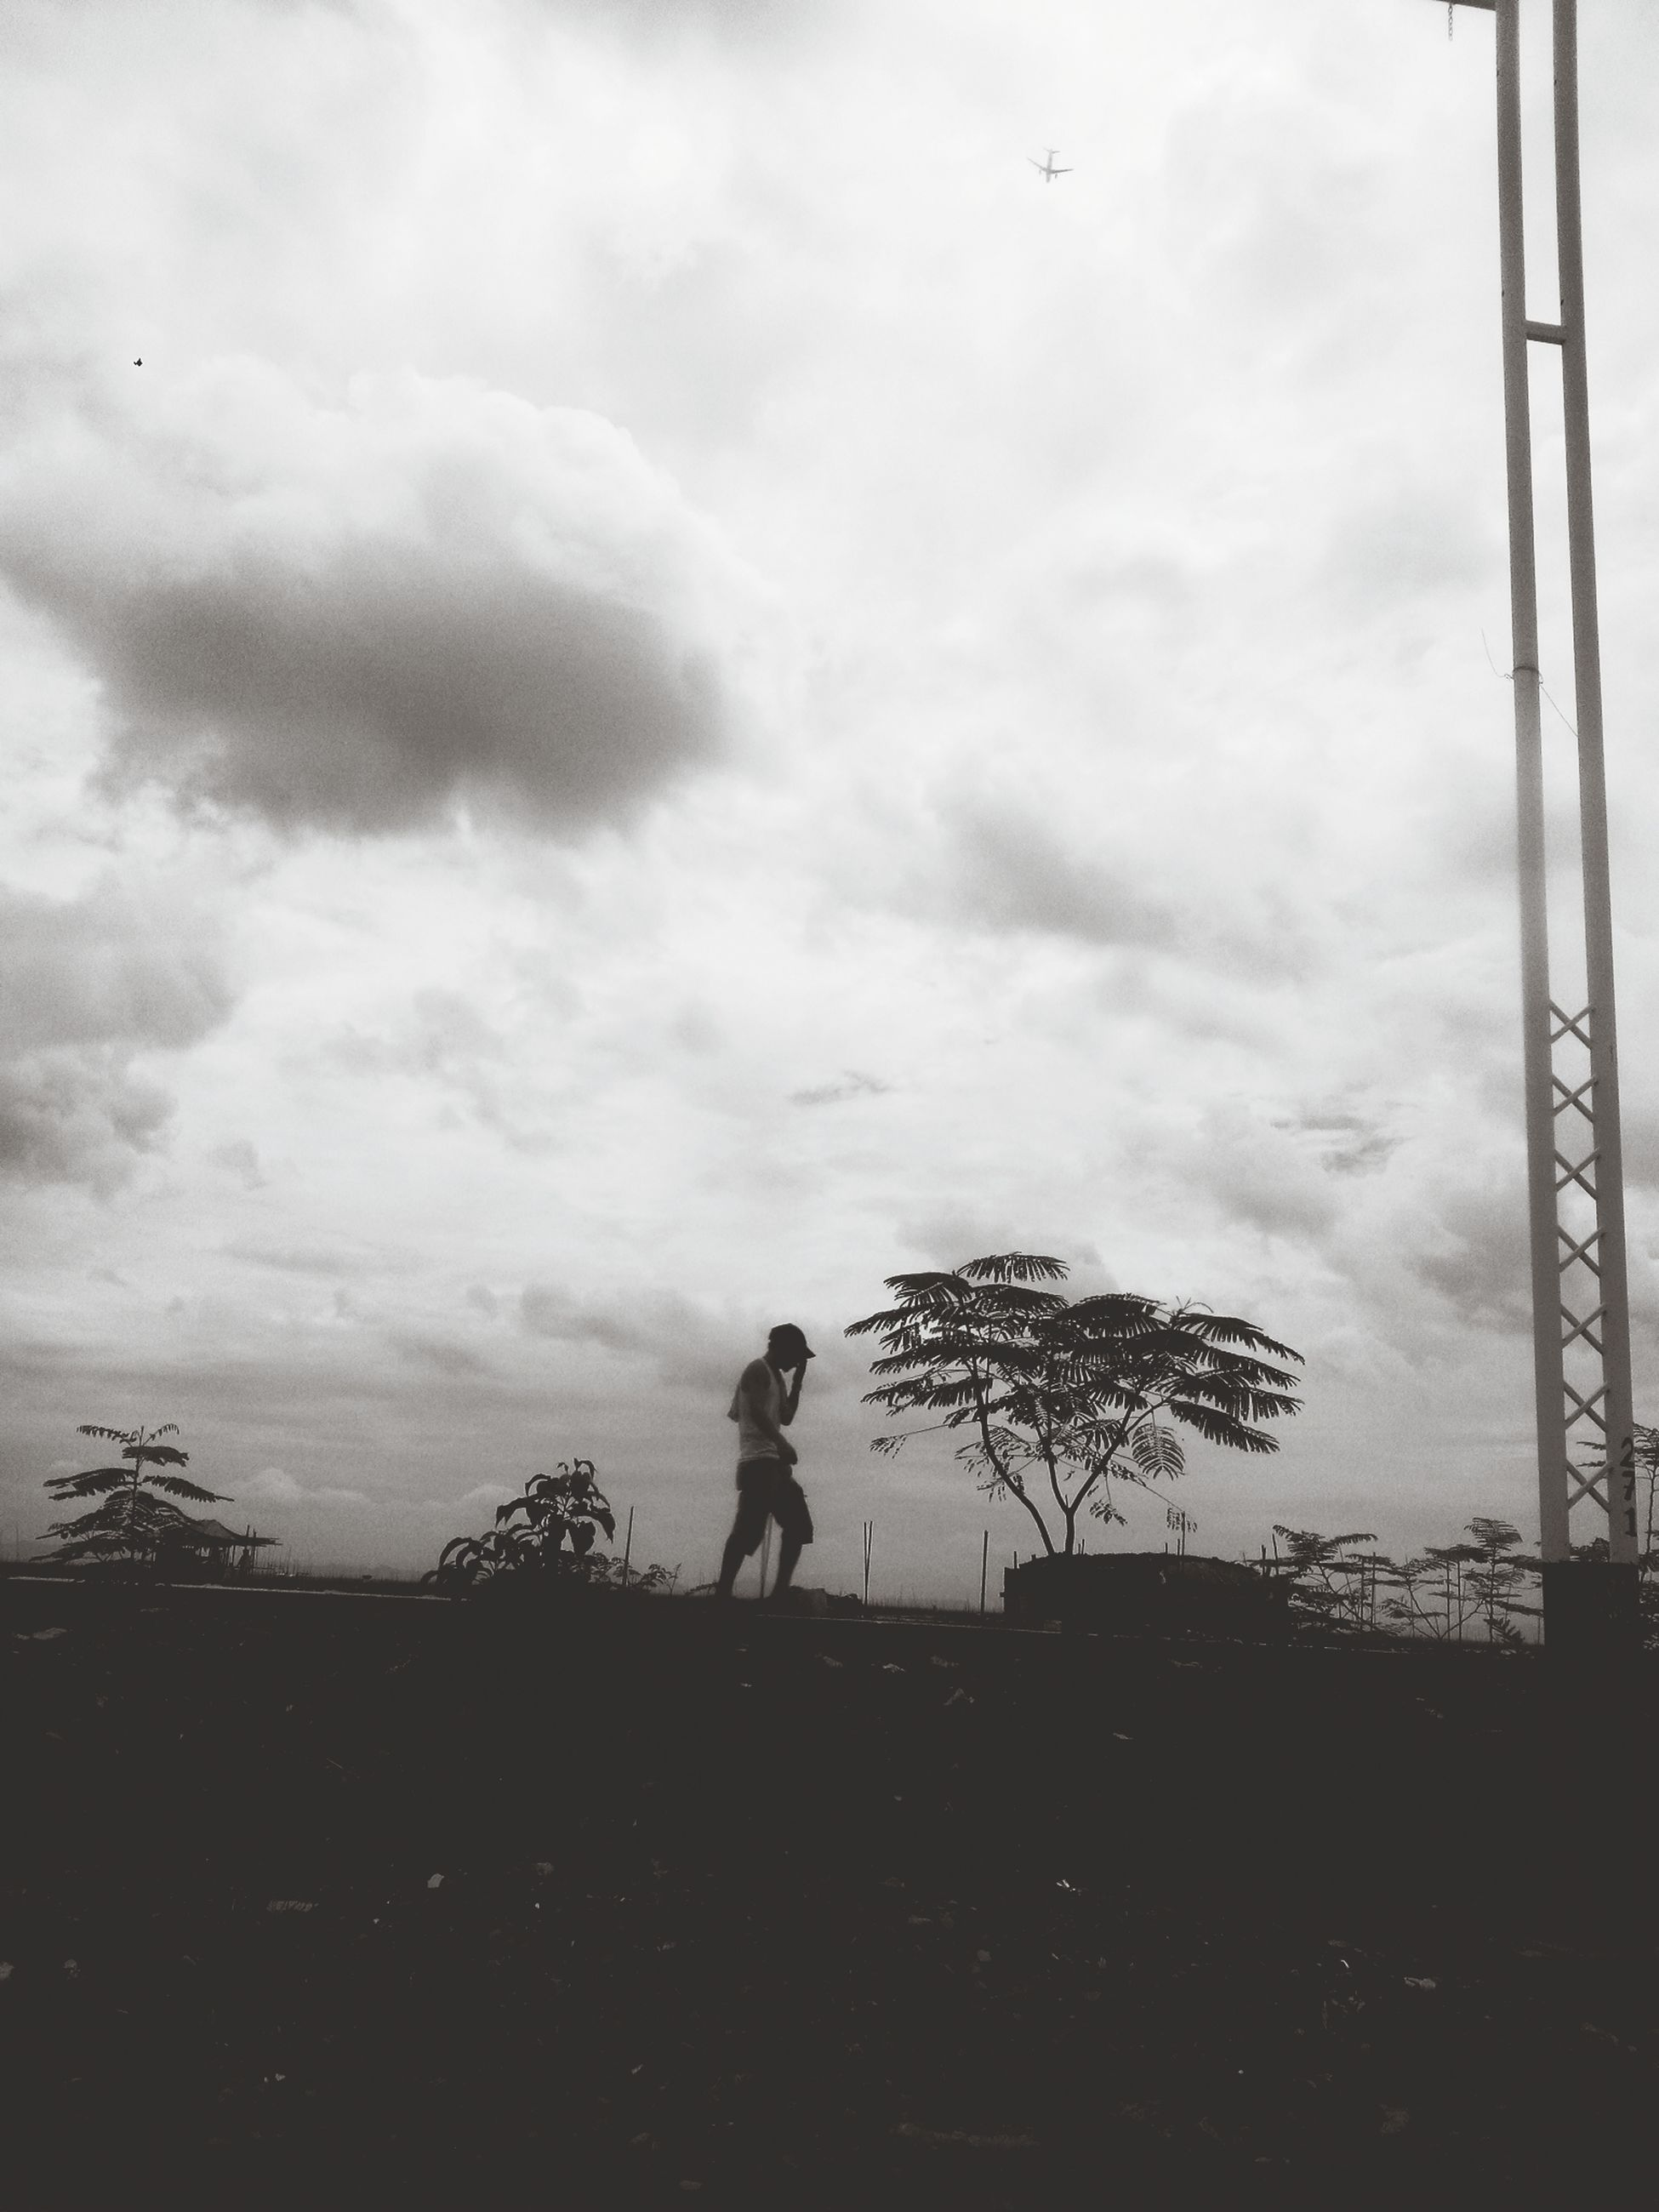 sky, cloud - sky, silhouette, leisure activity, lifestyles, full length, tree, cloudy, field, men, cloud, nature, low angle view, outdoors, landscape, standing, tranquility, day